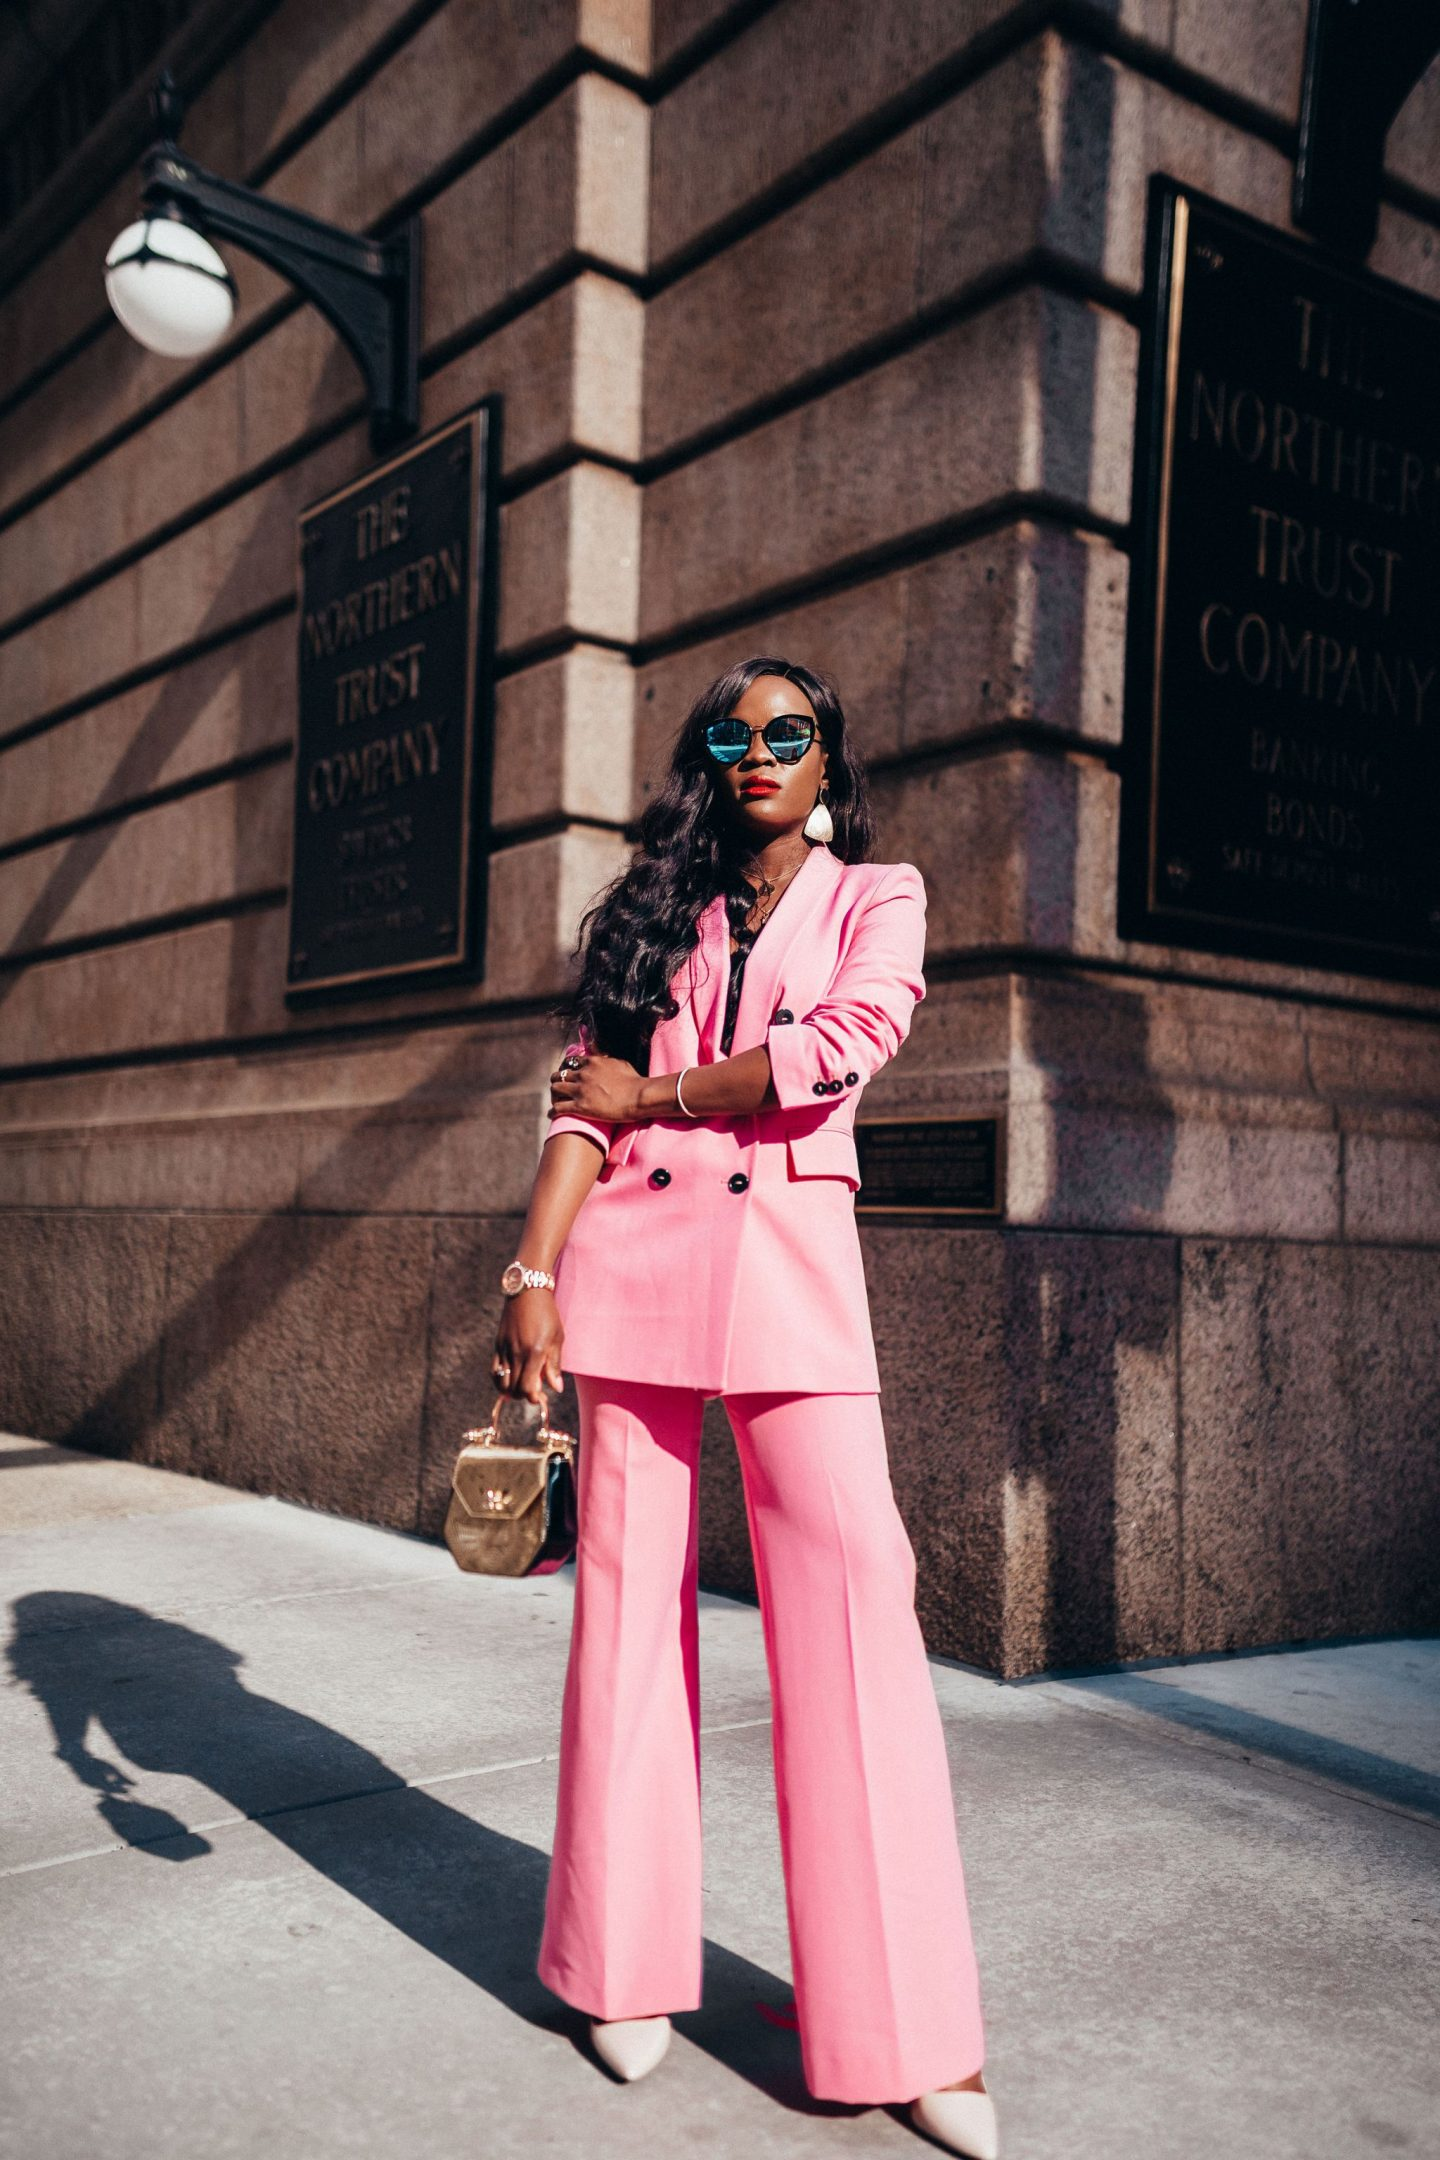 The Pink Power Suit